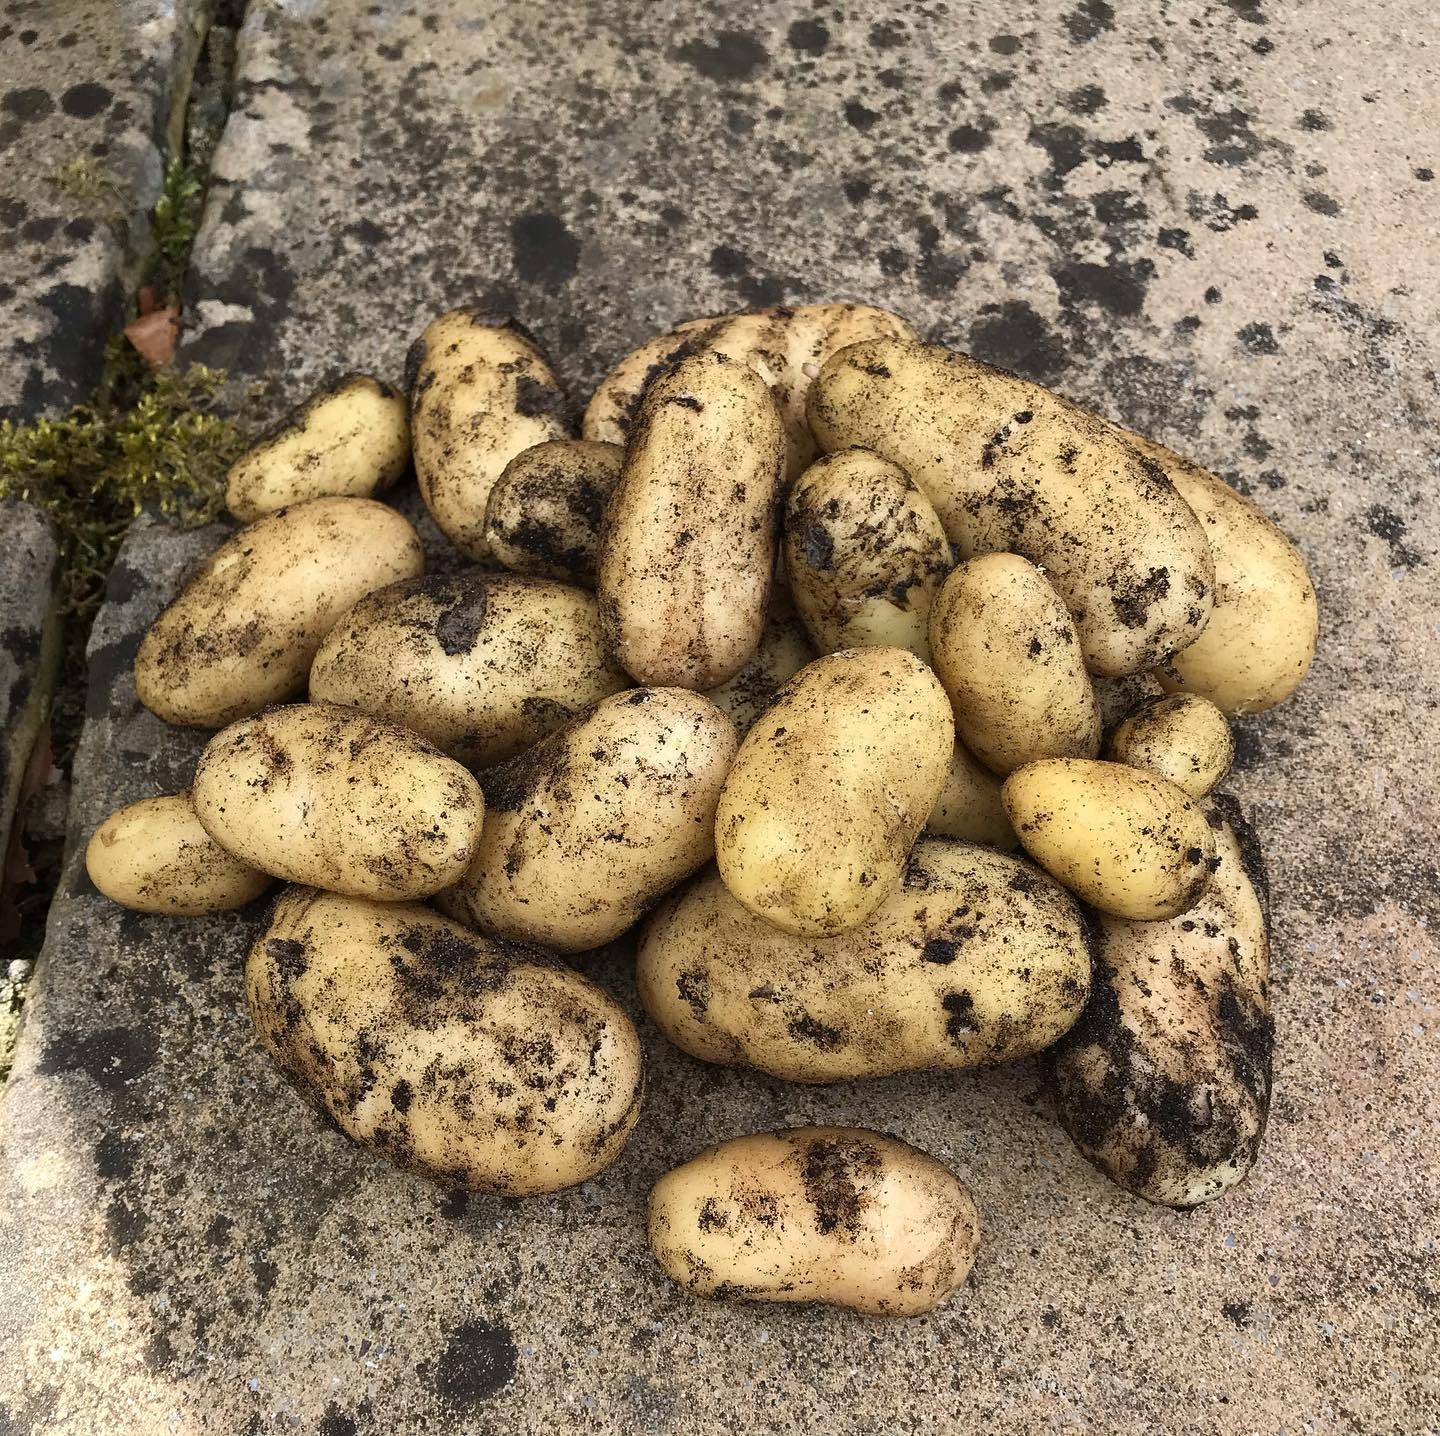 Potato Harvest 07-07-2020